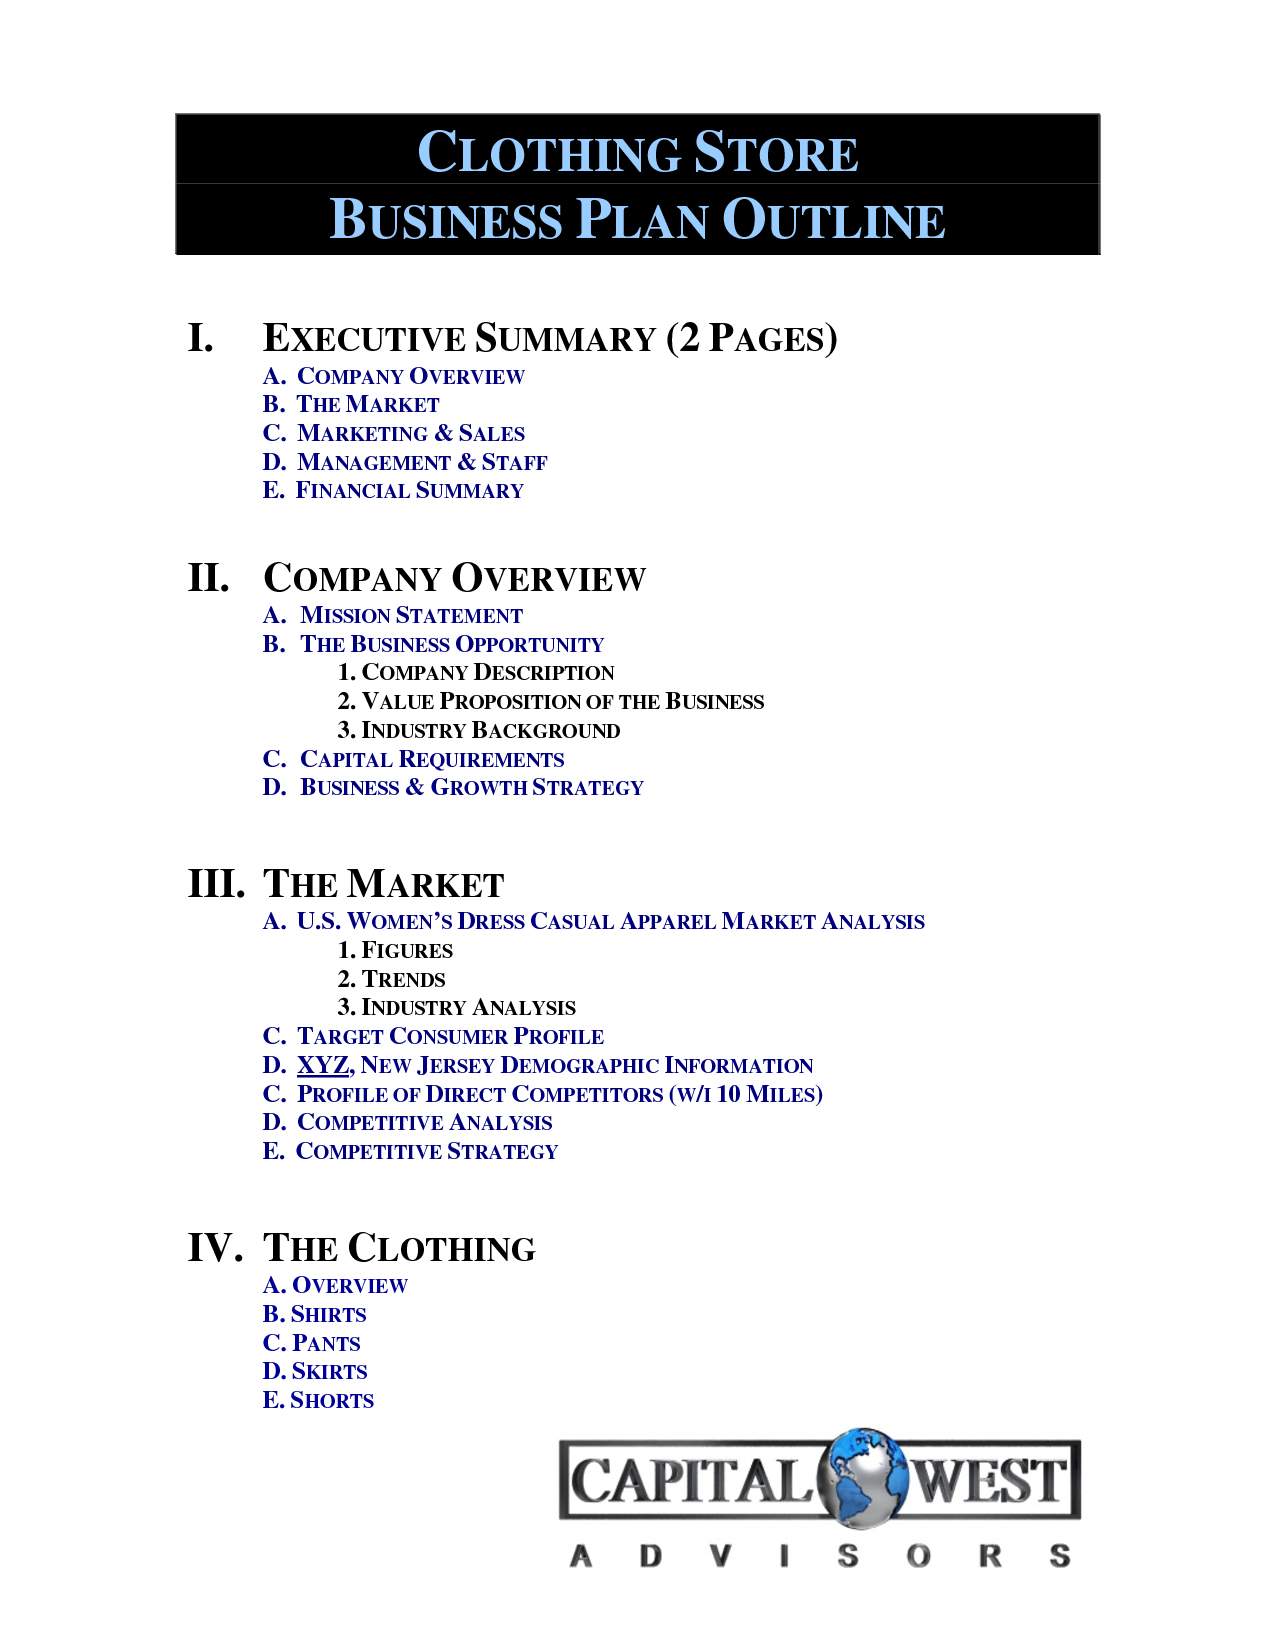 Clothing Line Business Plan Template Free  Free Business Template In Business Plan Template For Clothing Line